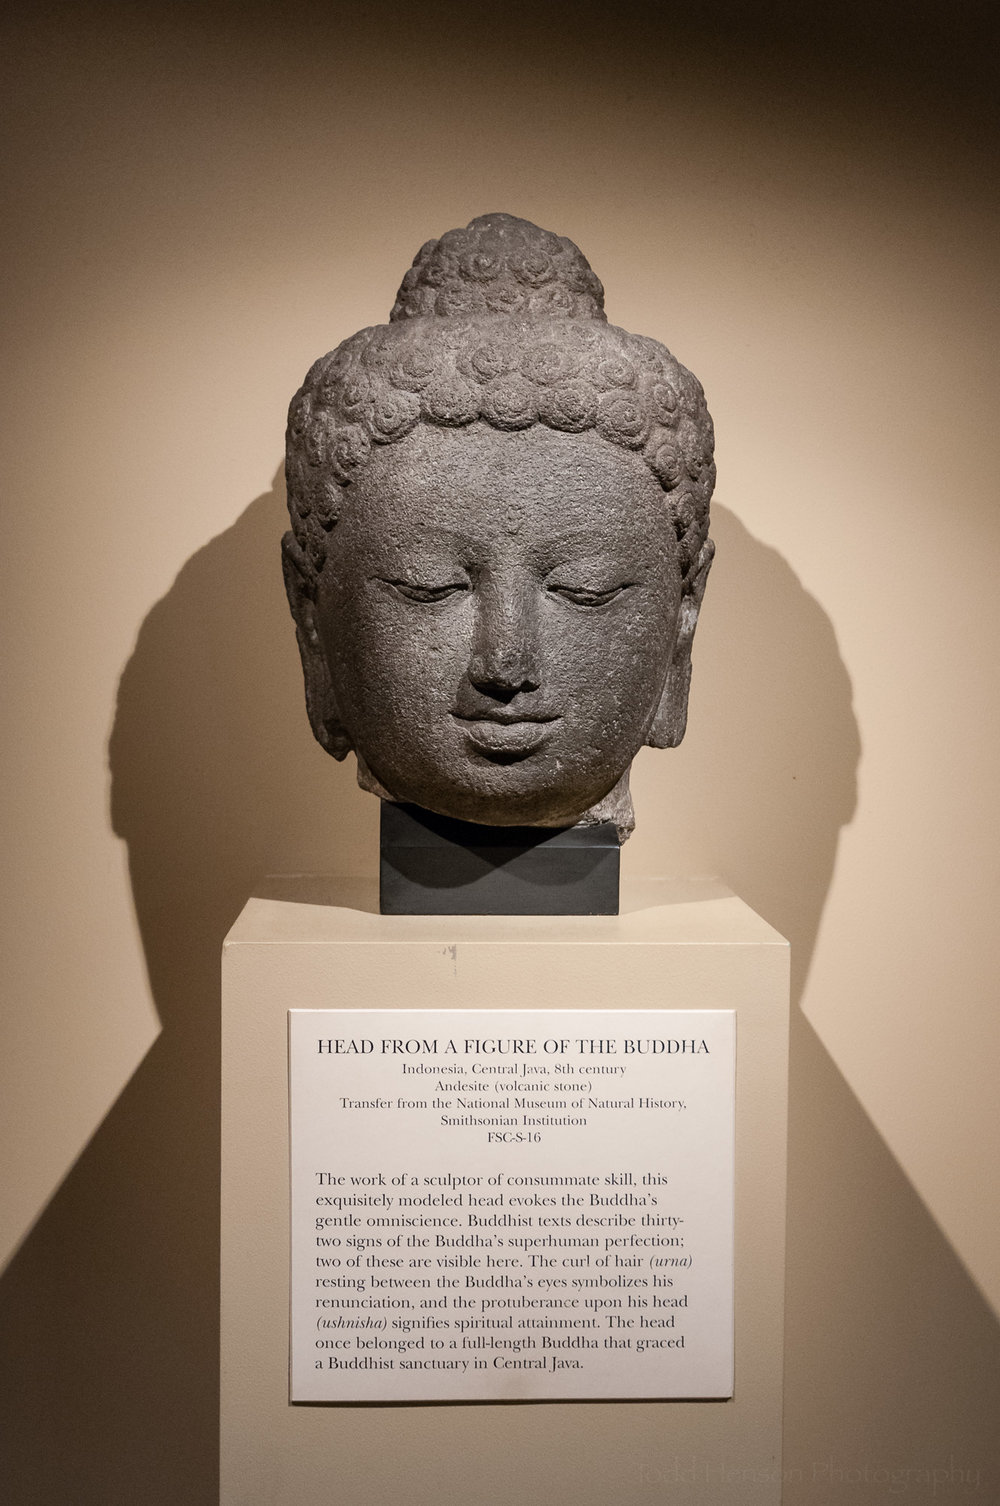 Head From a Figure of the Buddha at the Sackler Museum